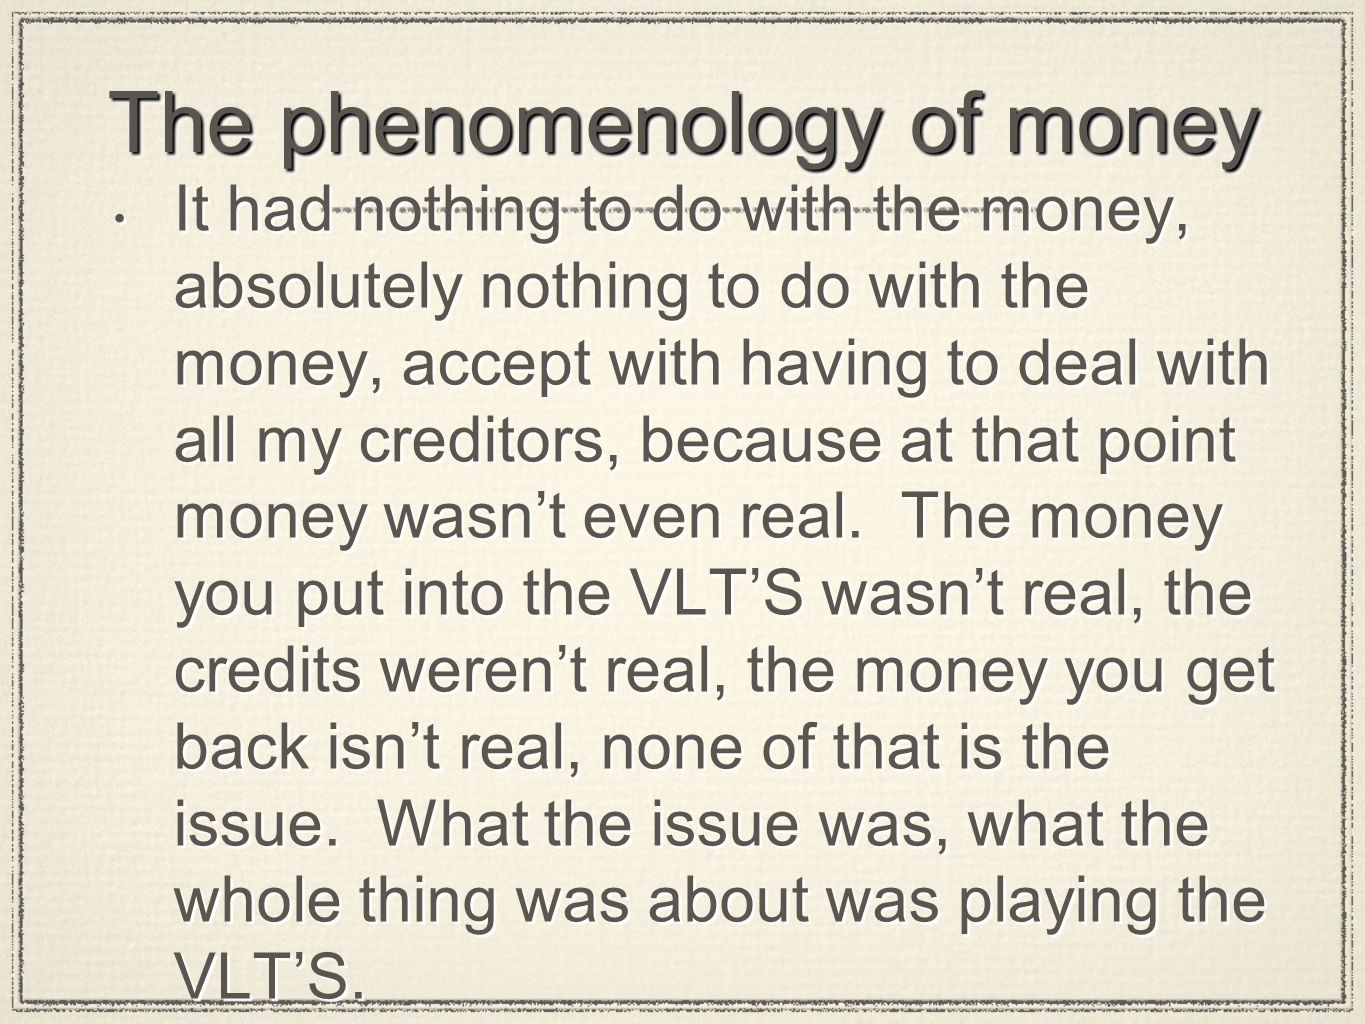 The phenomenology of money It had nothing to do with the money, absolutely nothing to do with the money, accept with having to deal with all my creditors, because at that point money wasn't even real.